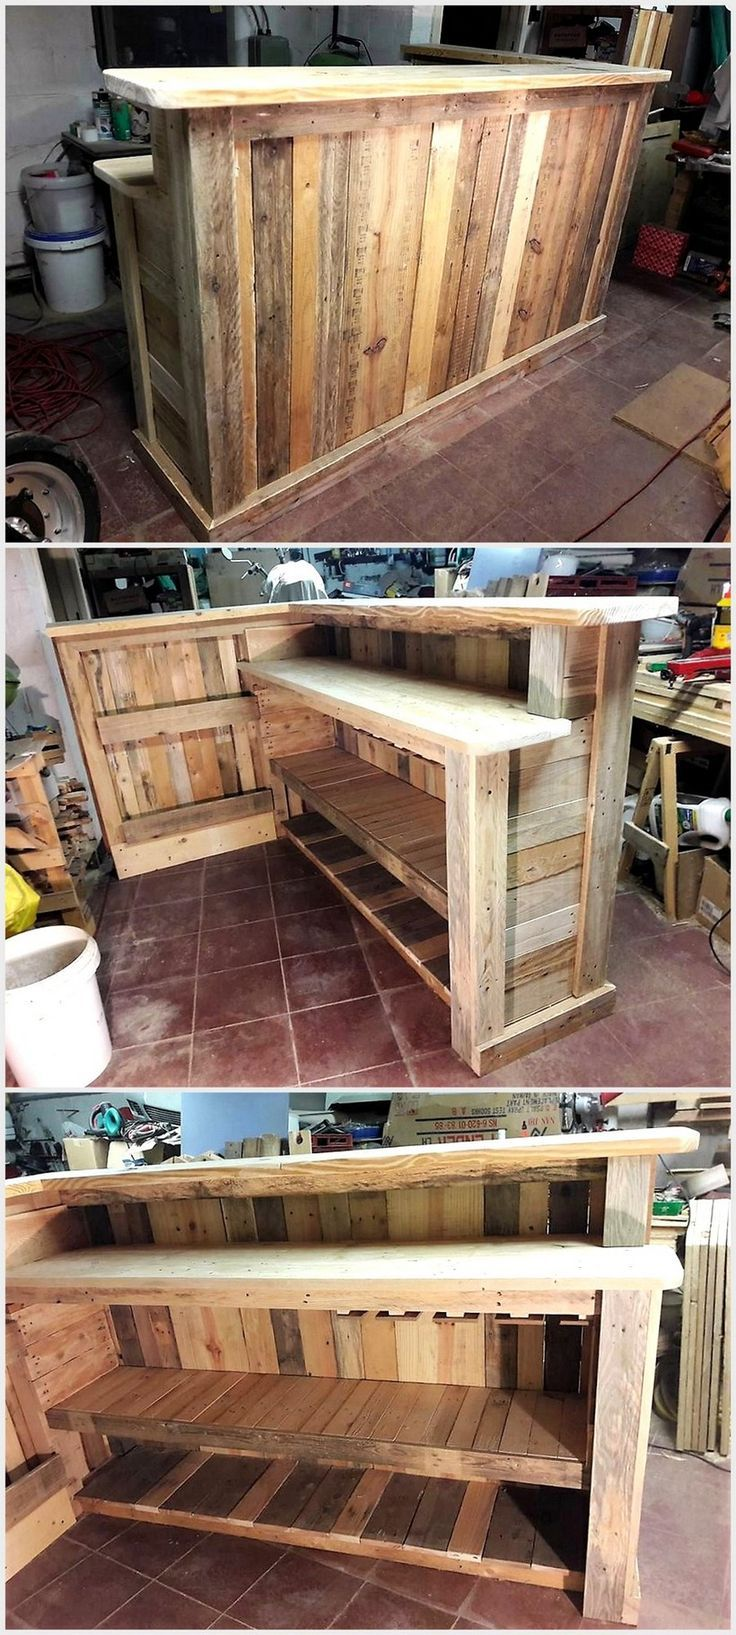 bar bauen ideen cheap home furnishing with wooden pallets | manly man cave